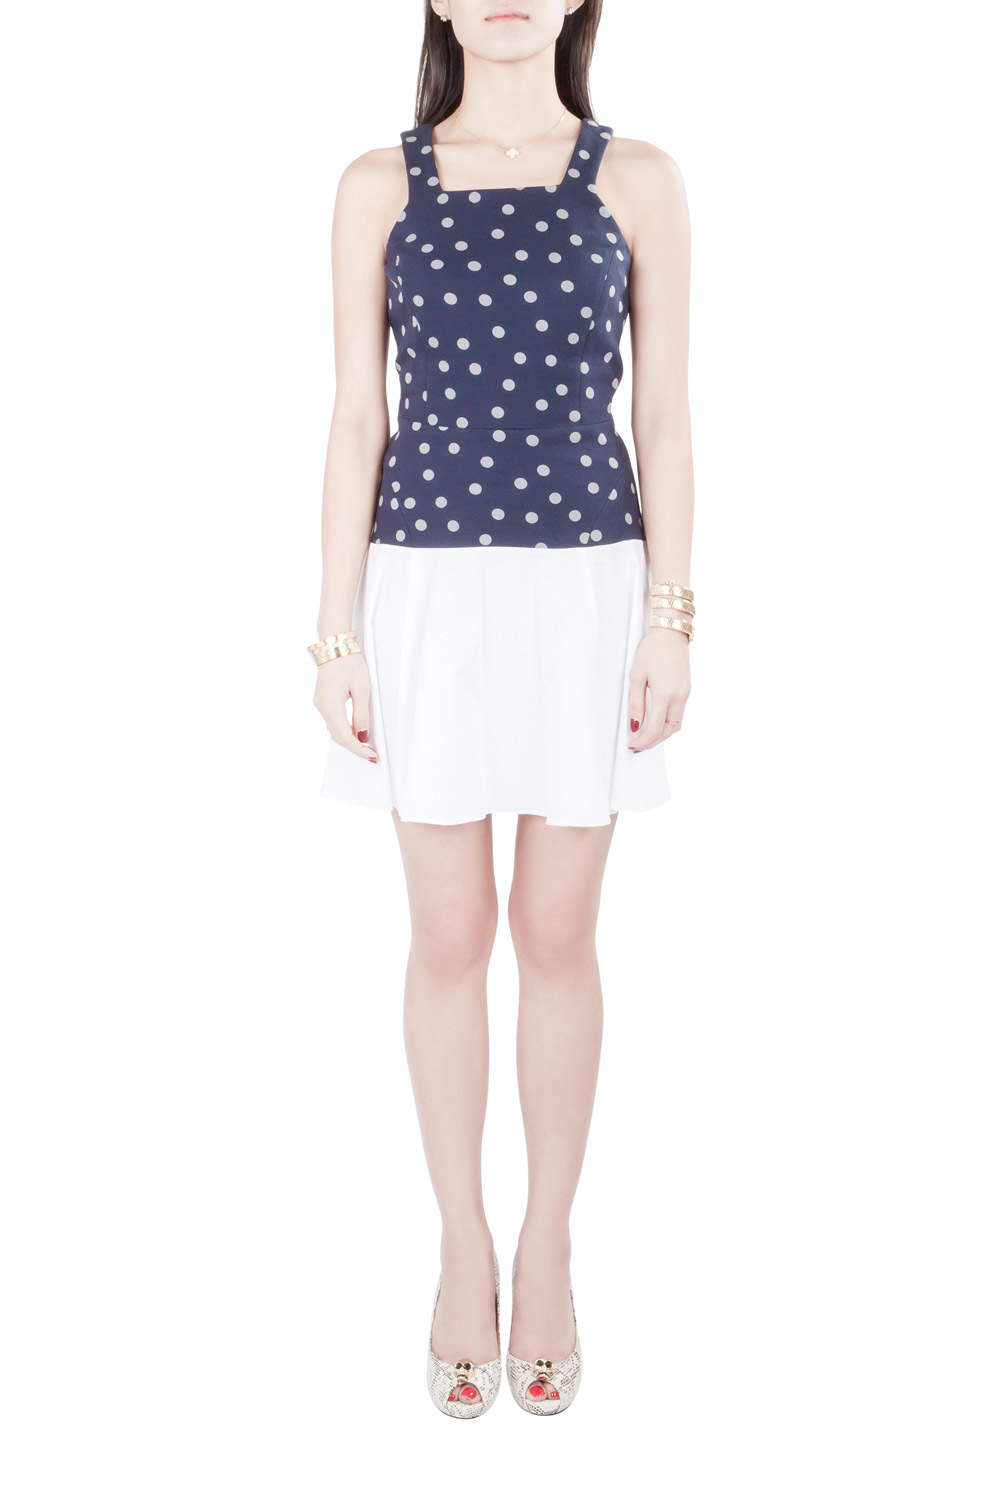 Thakoon Addition Navy Blue and White Polka Dot Cotton Sleeveless Flared Dress XS